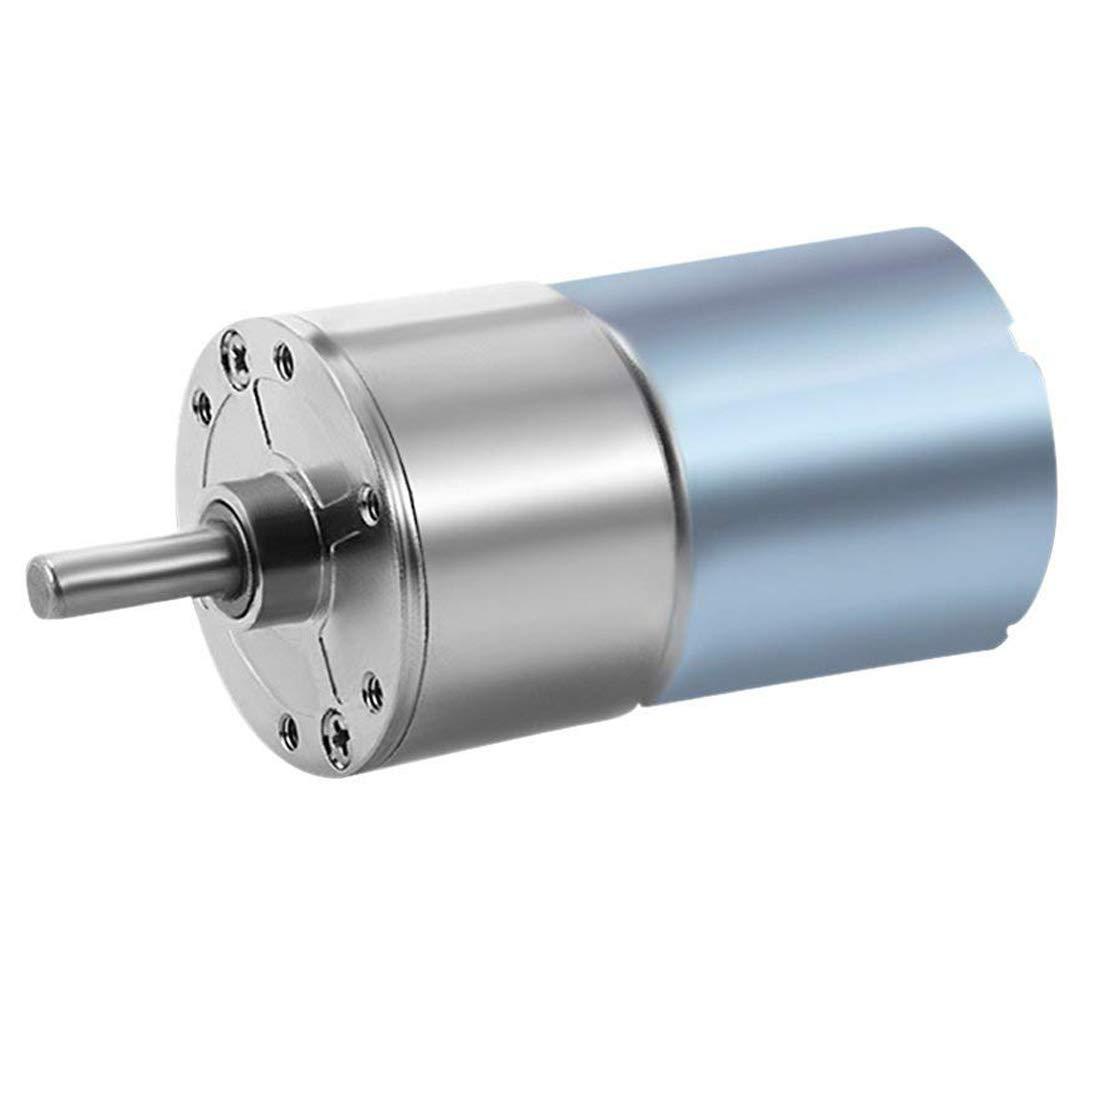 Yootop DC12V 550RPM Gear Motor High Torque Centric Output Shaft Electric Reduction Geared Motor Gear Box